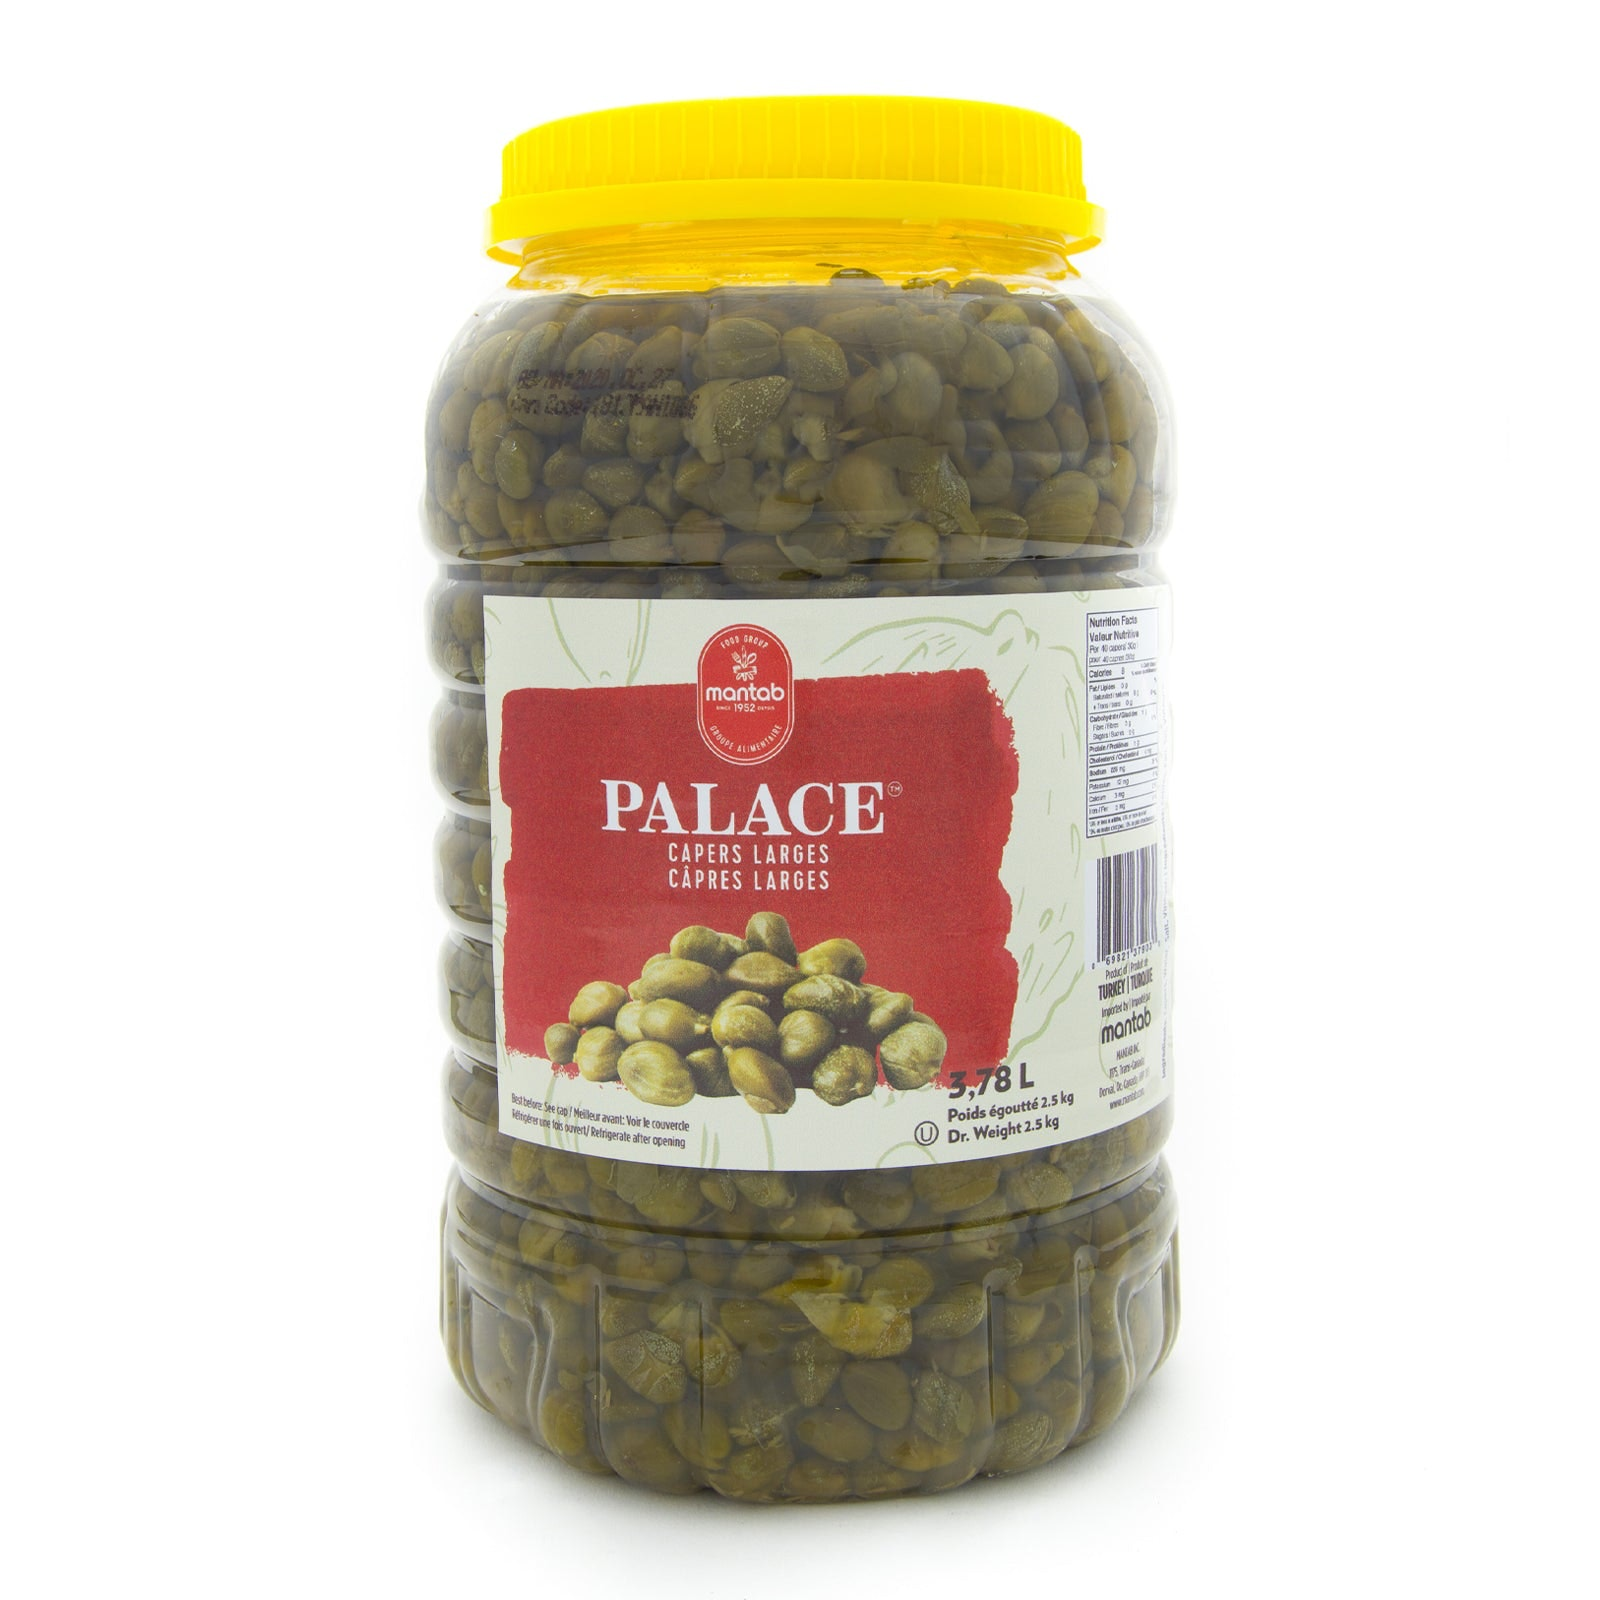 PALACE Capers large